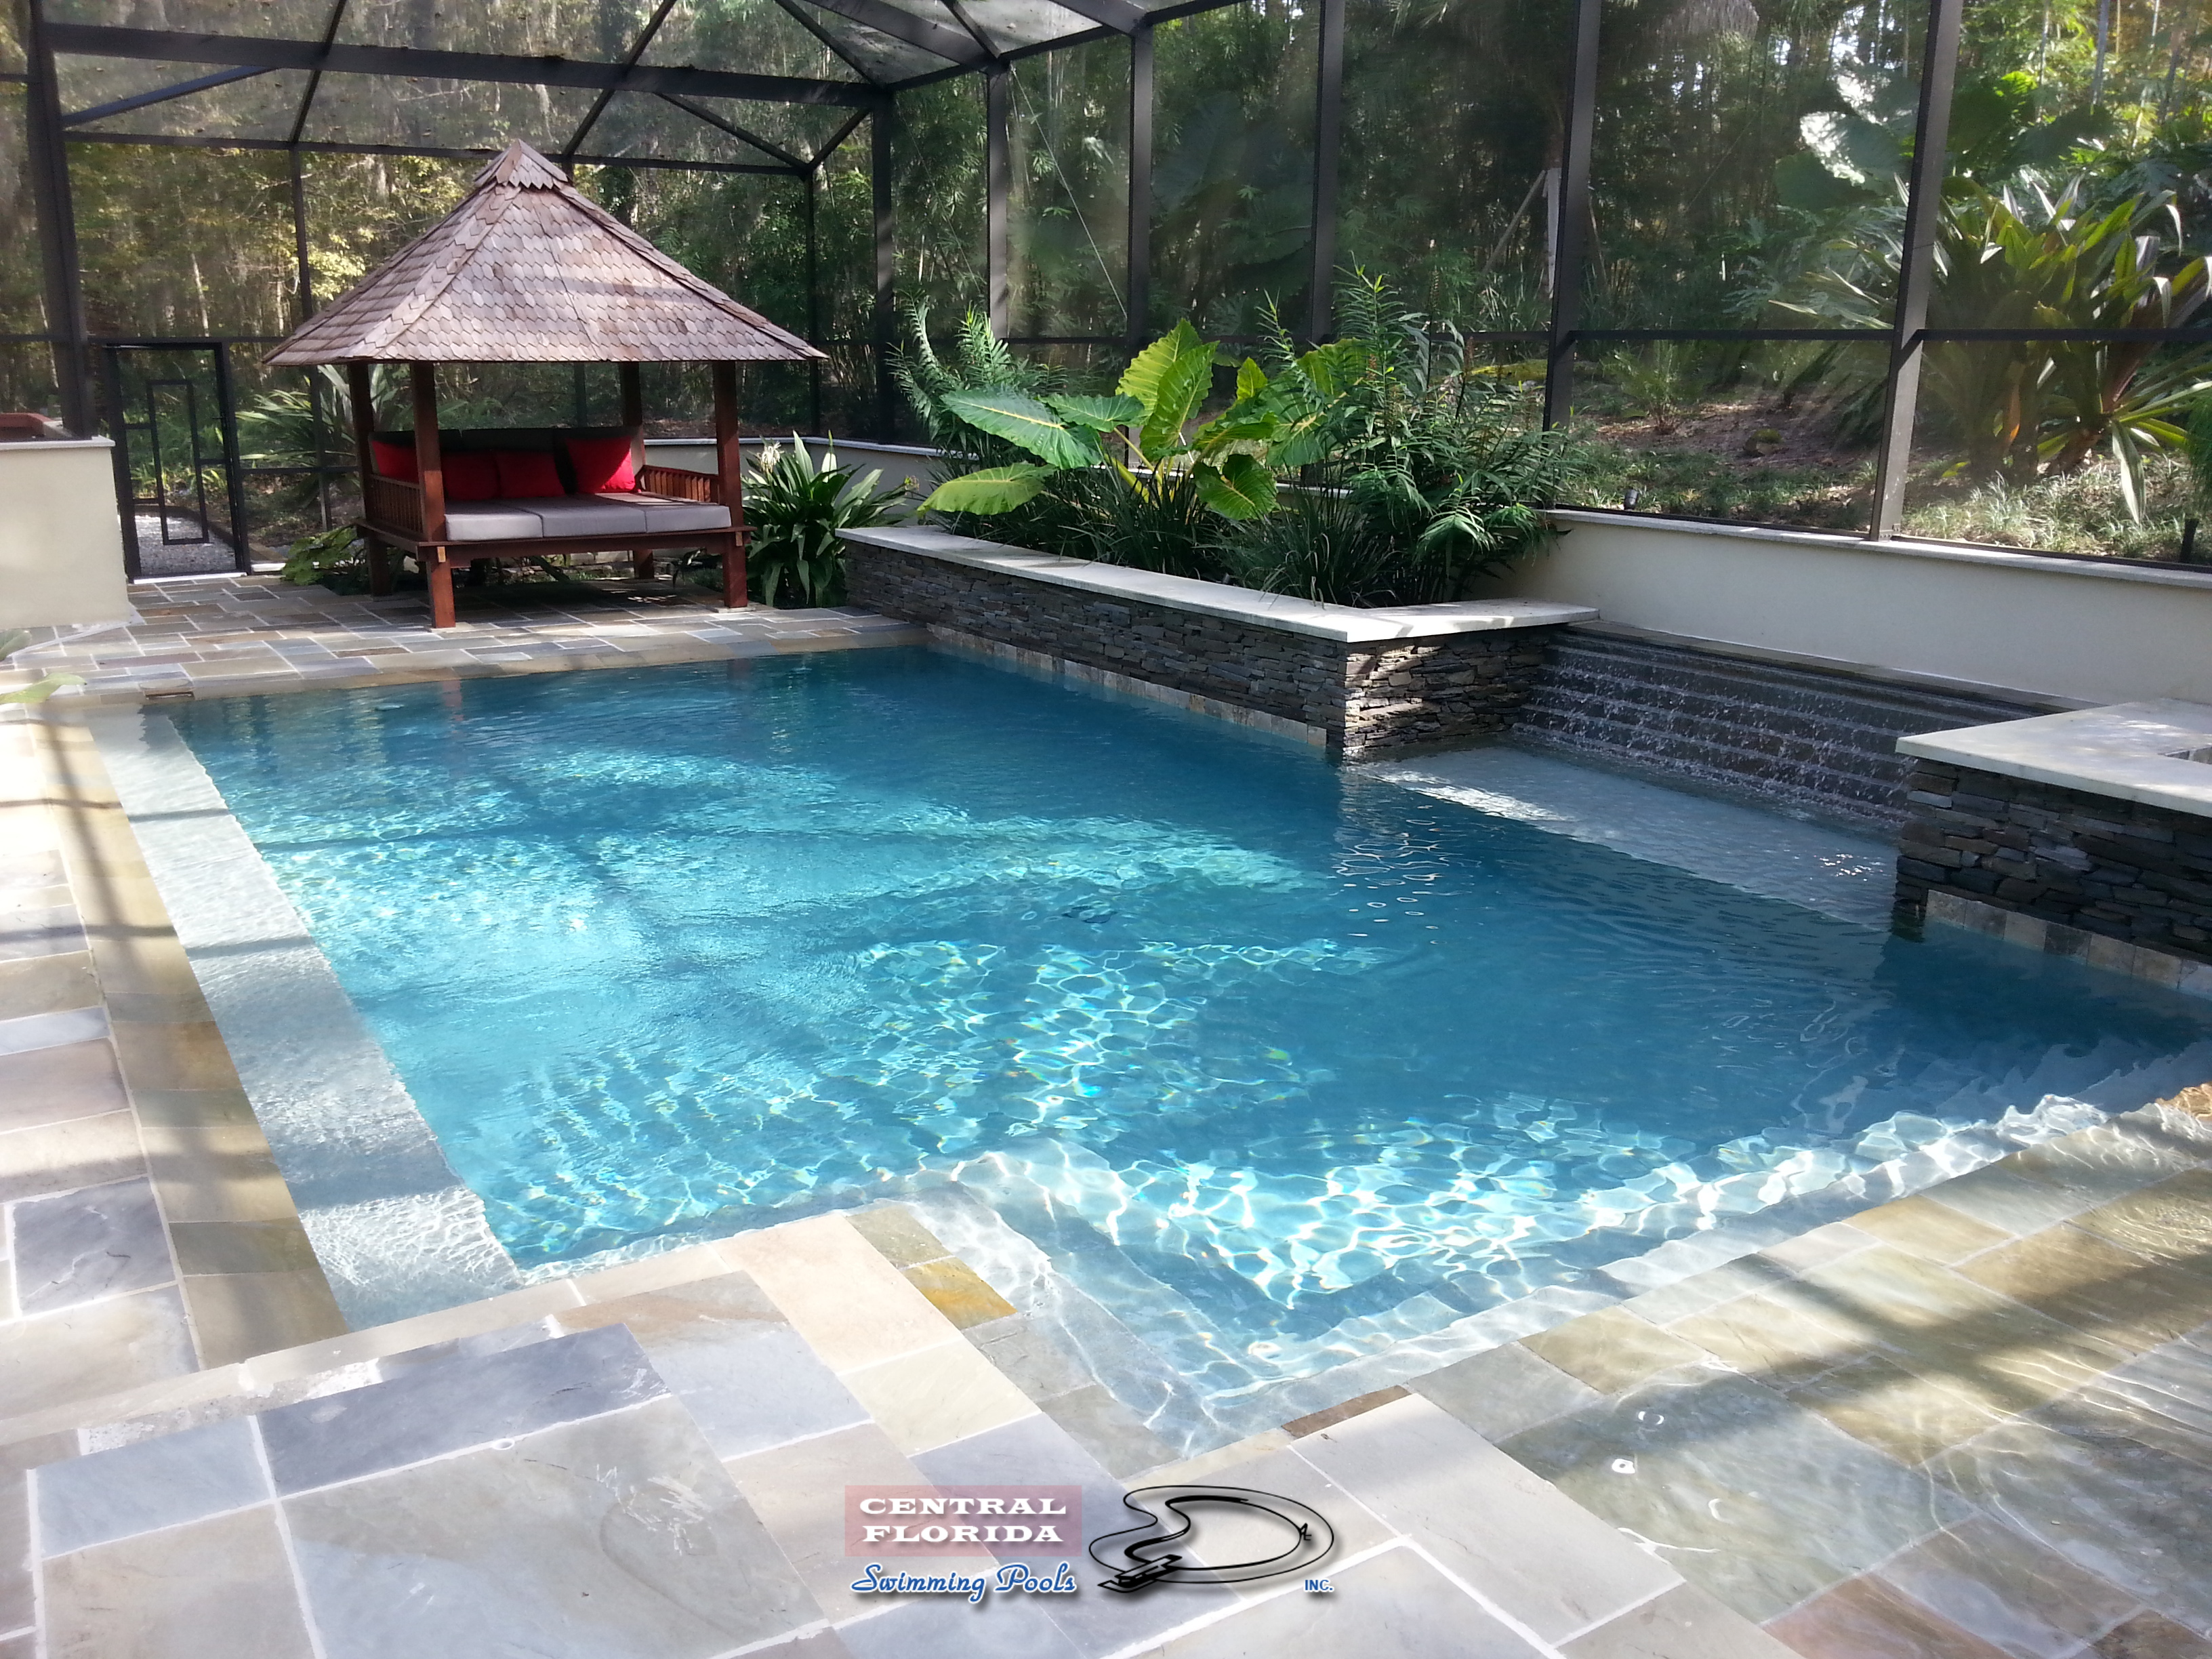 Central florida swimming pools inc website home page for Pool designs florida